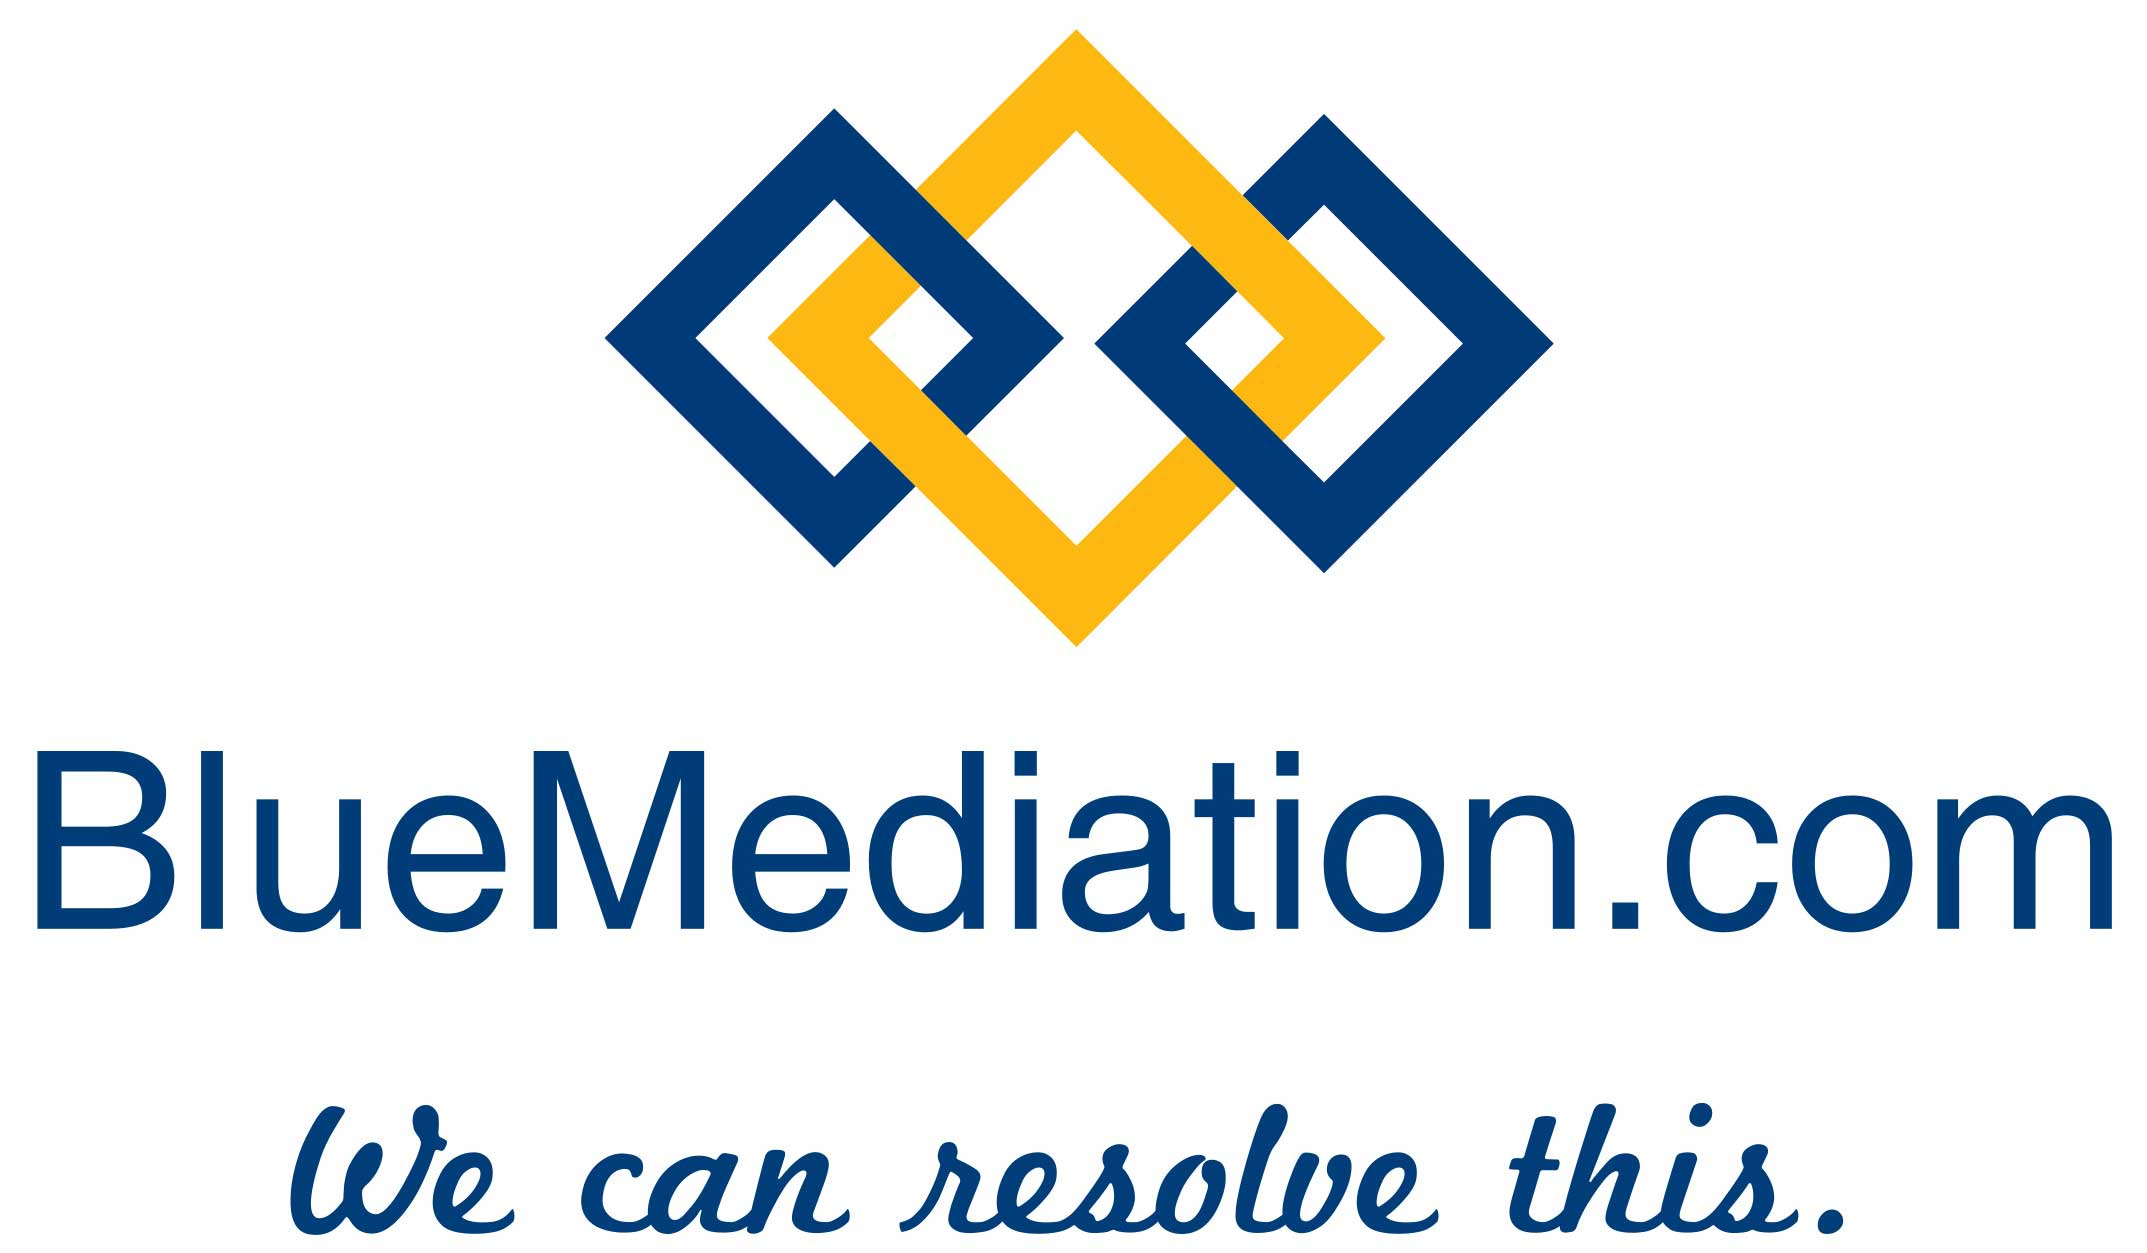 Blue Mediation - We can resolve this